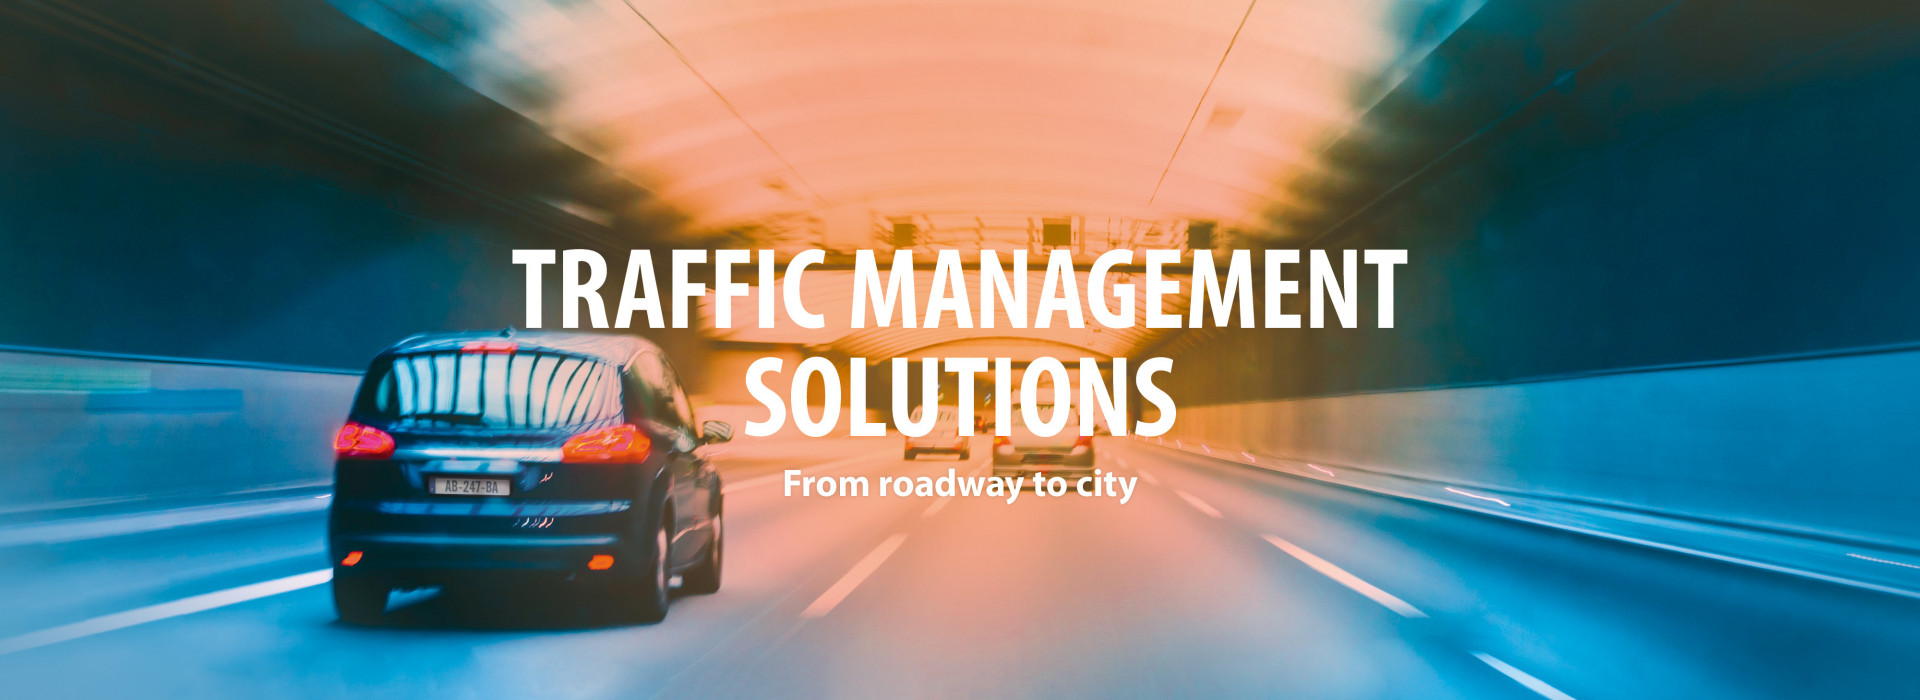 Traffic Management Solution - Hanwha Techwin Europe Limited